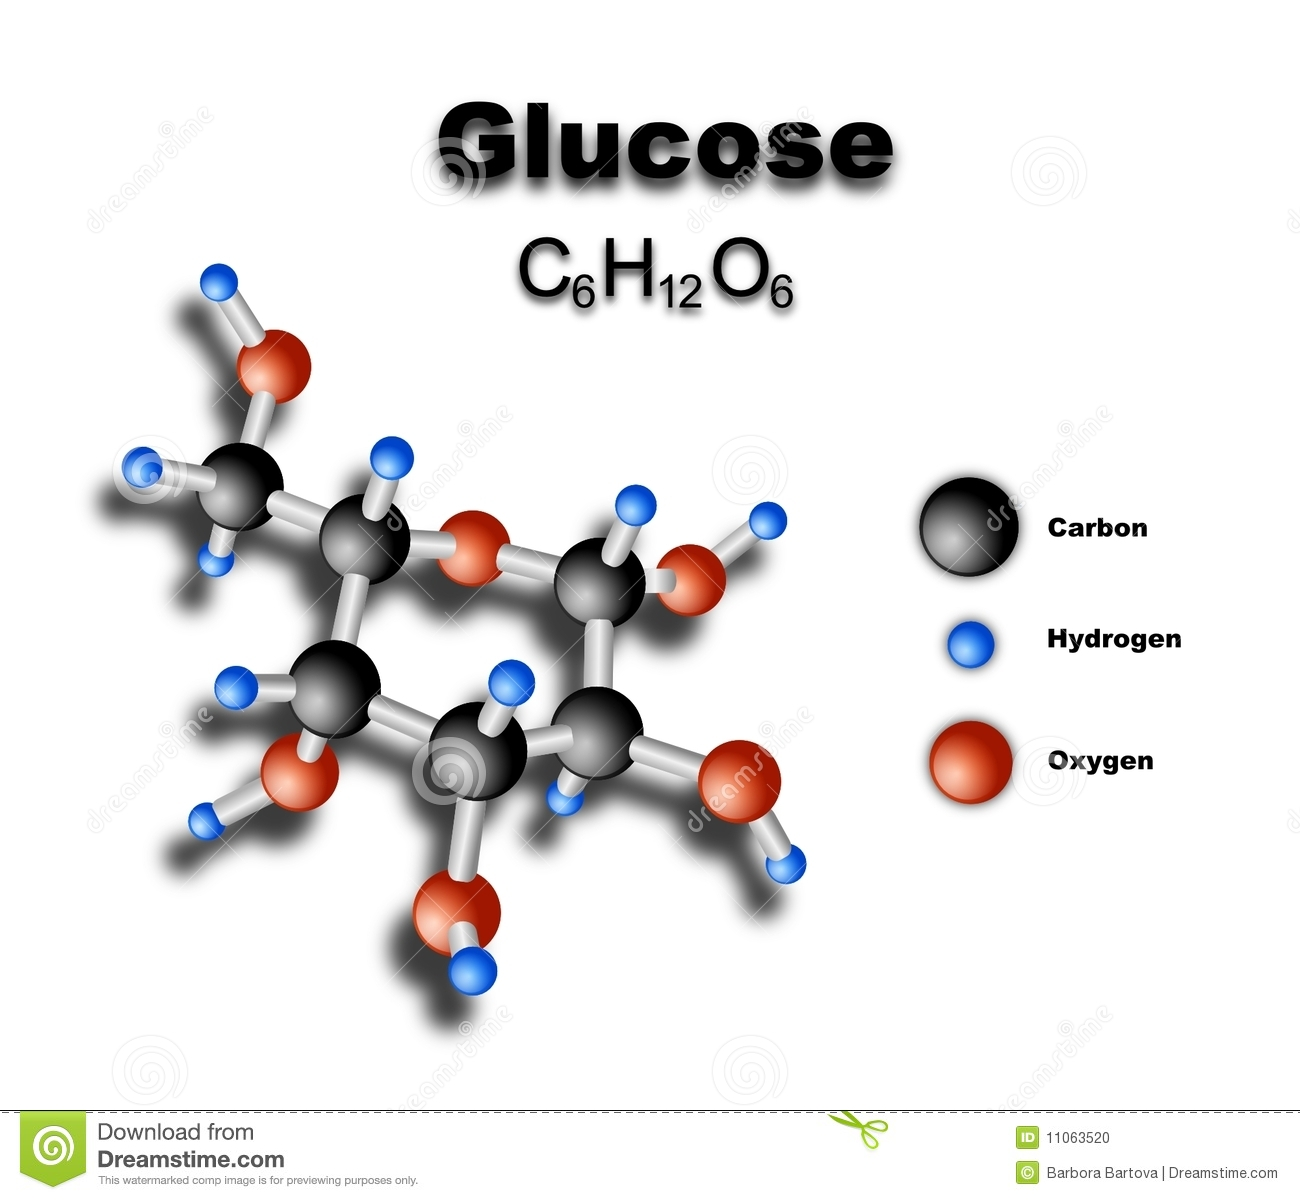 is glucose een koolhydraat